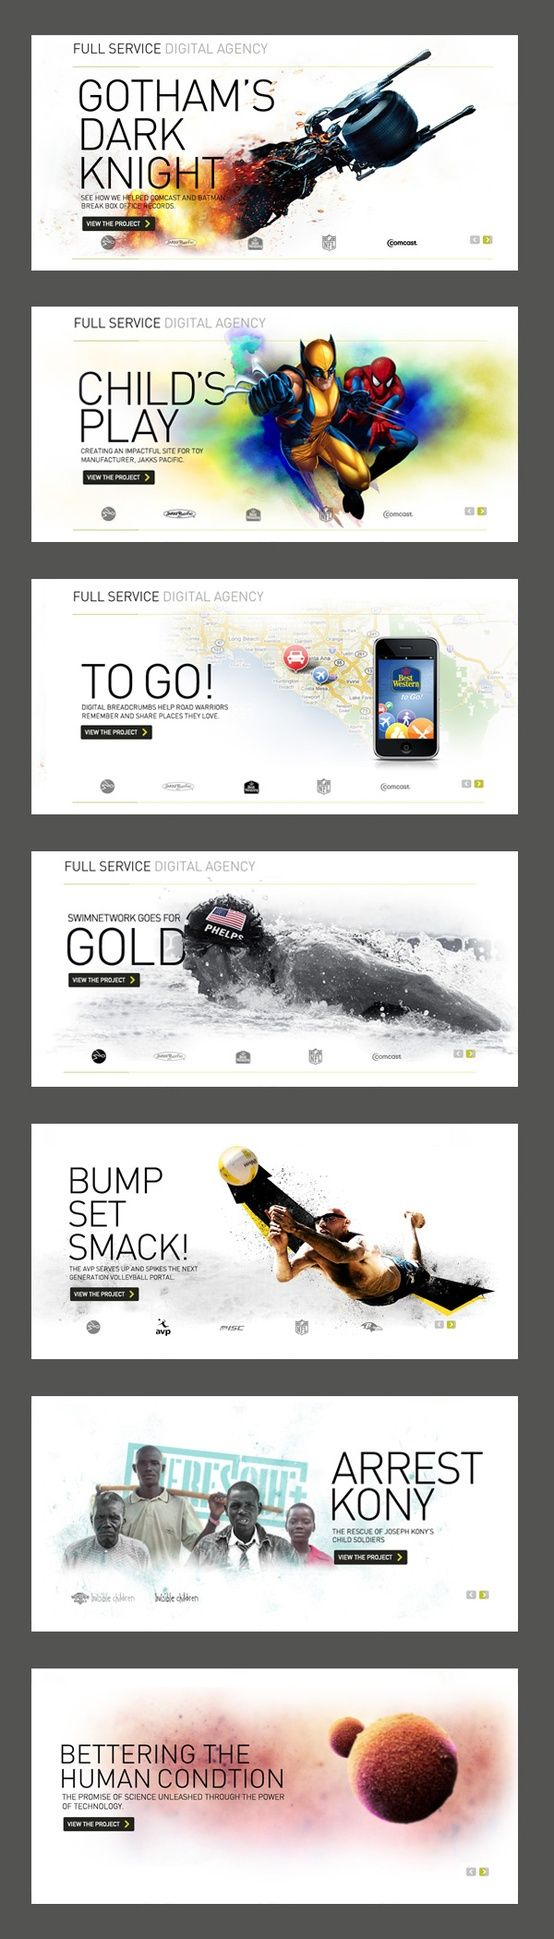 Full Service Digital Agency ~ #WebDesign #GraphicDesign #Inspiration more on http://themeforest.net/?ref=Vision7Studio: